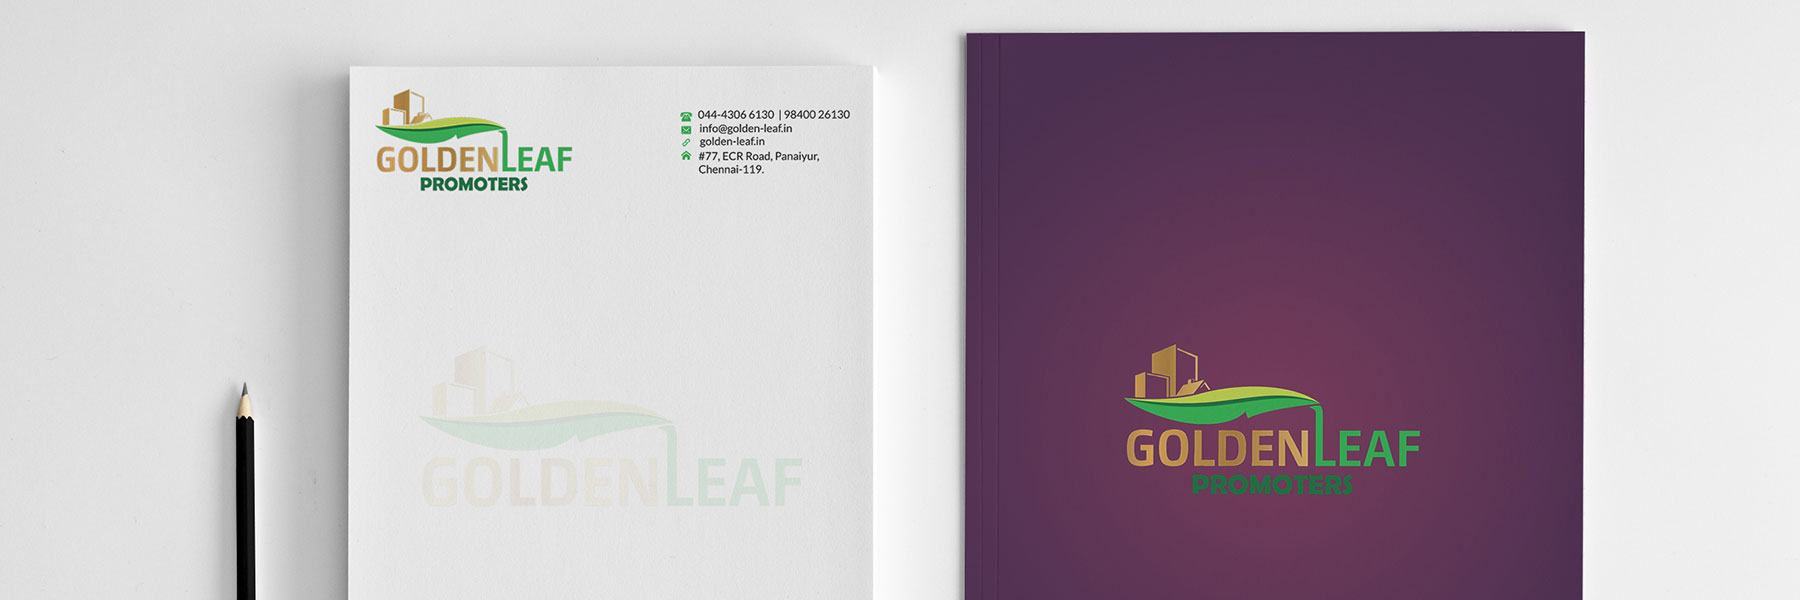 Golden Leaf Promoter